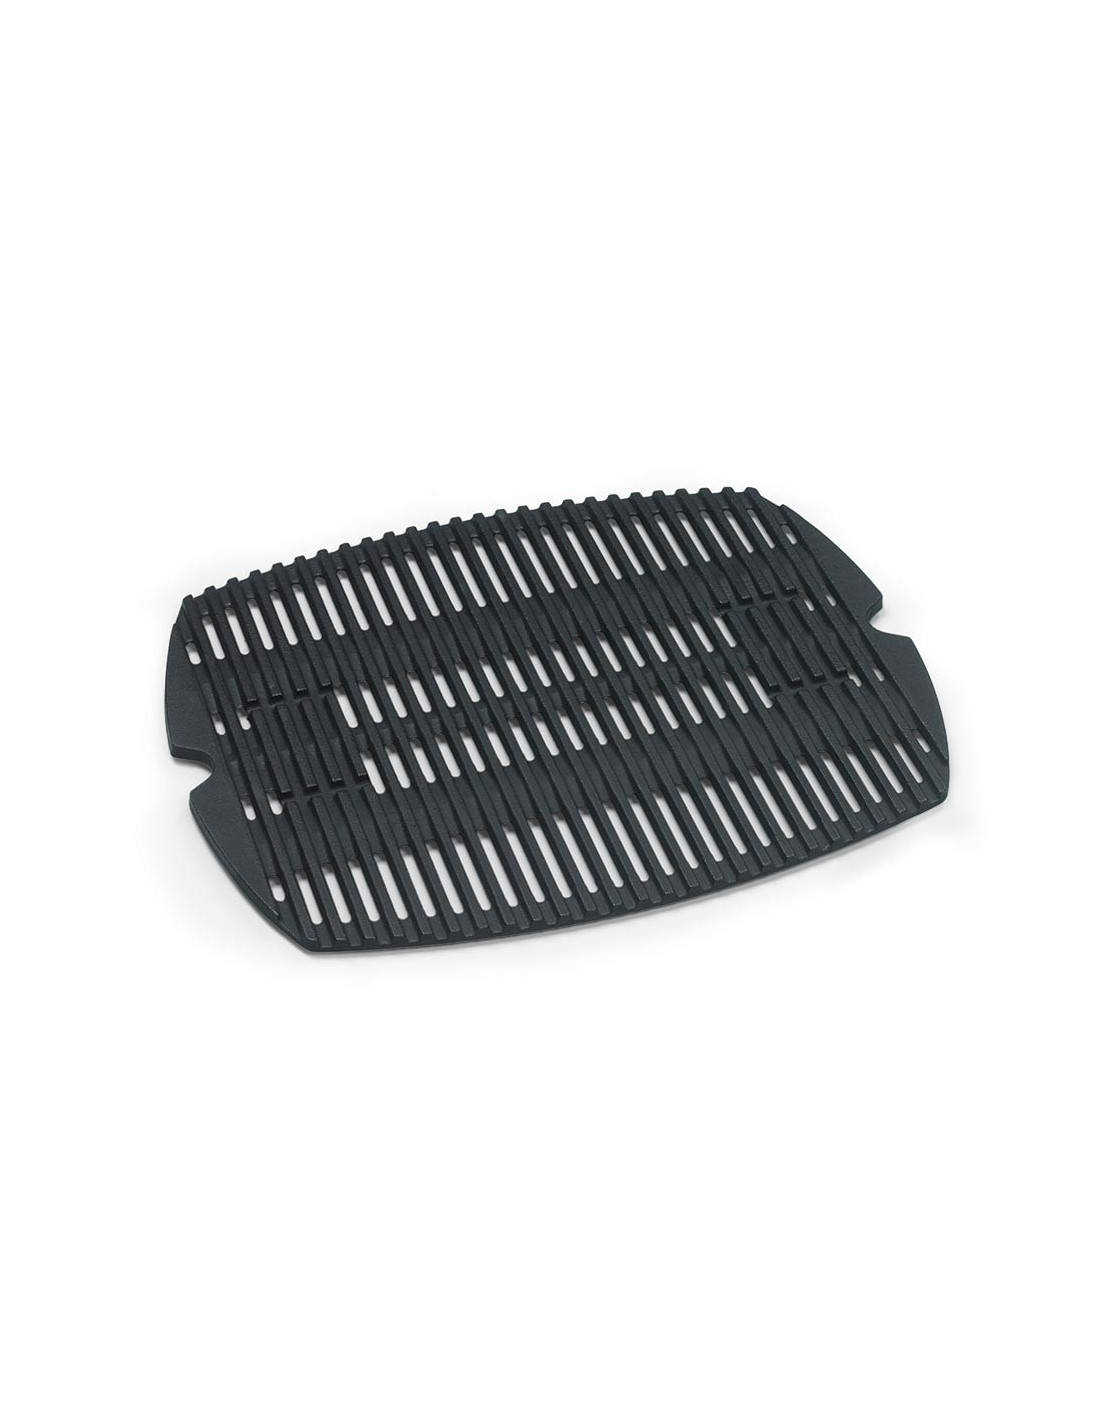 Grille de cuisson en fonte barbecue weber q100 pi ce de for Barbecue weber gaz q120